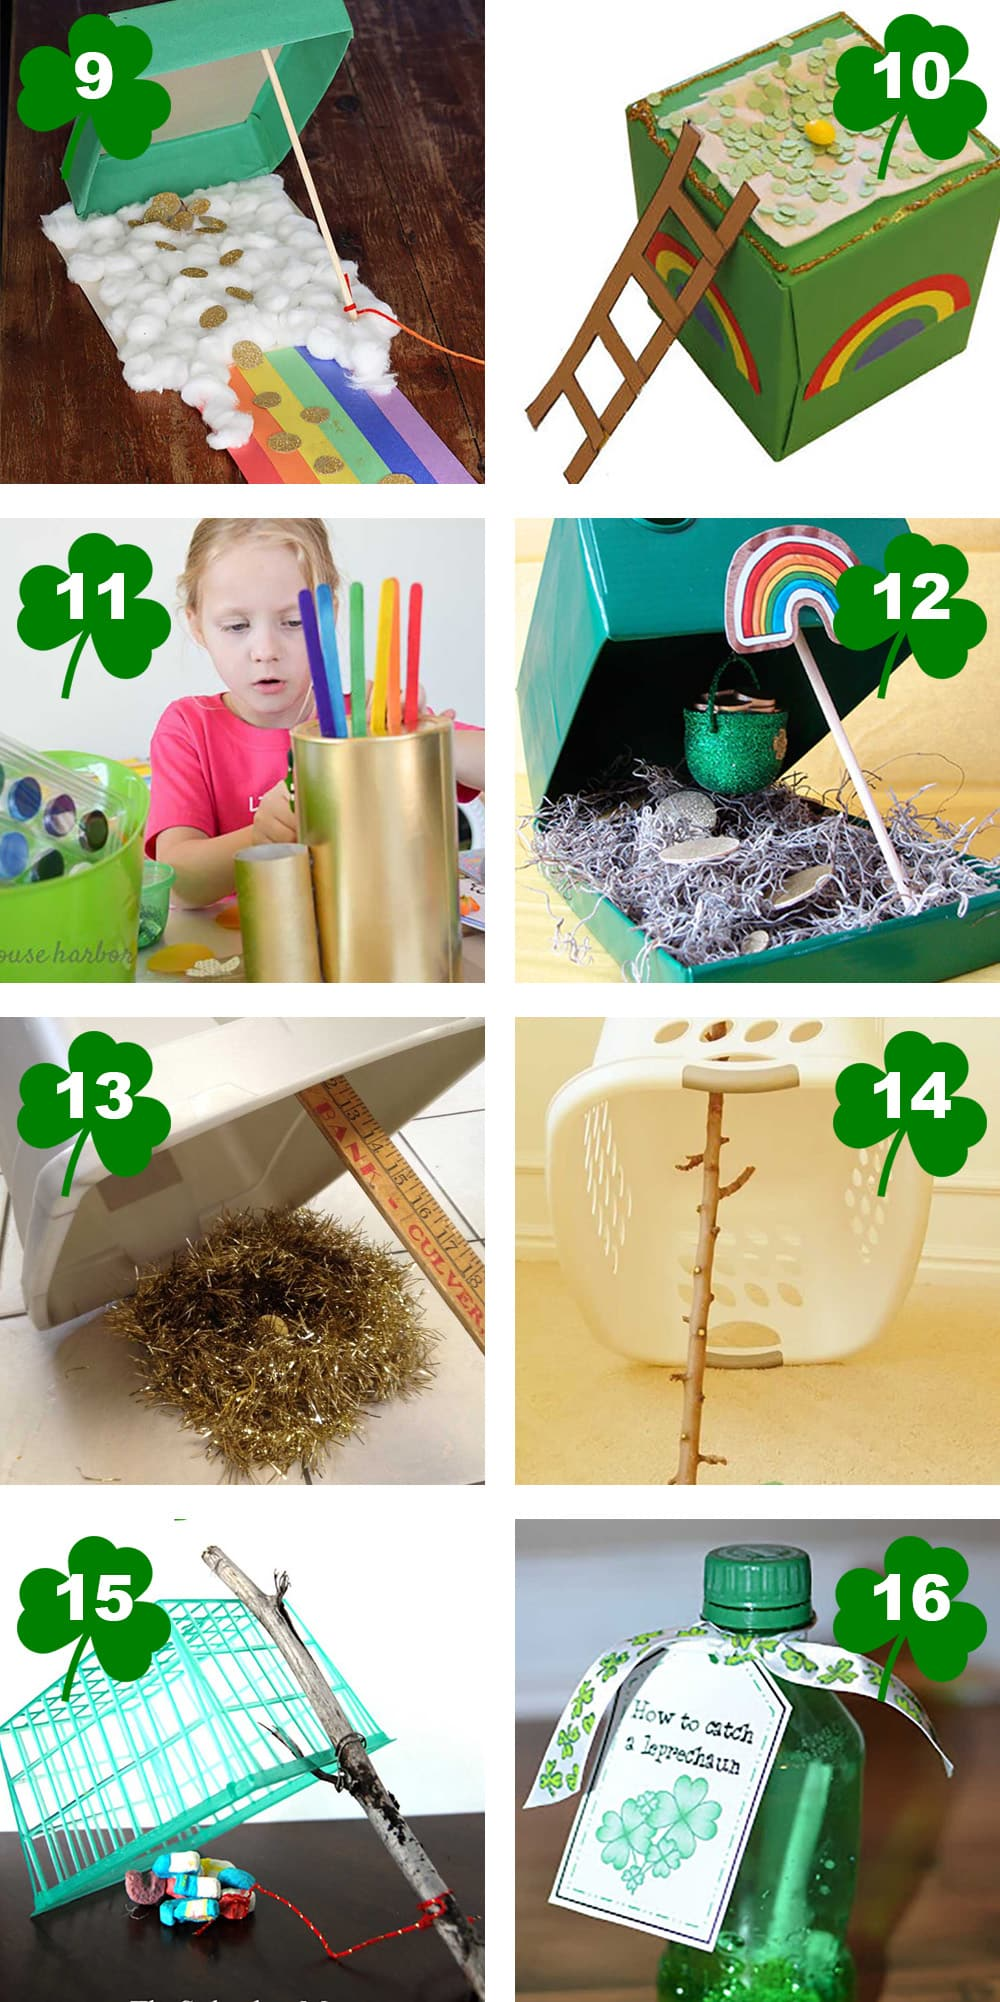 50 Easy Leprechaun Trap Ideas that will have you catching those leprechauns and finding their pot of gold in no time! Merakimother.com